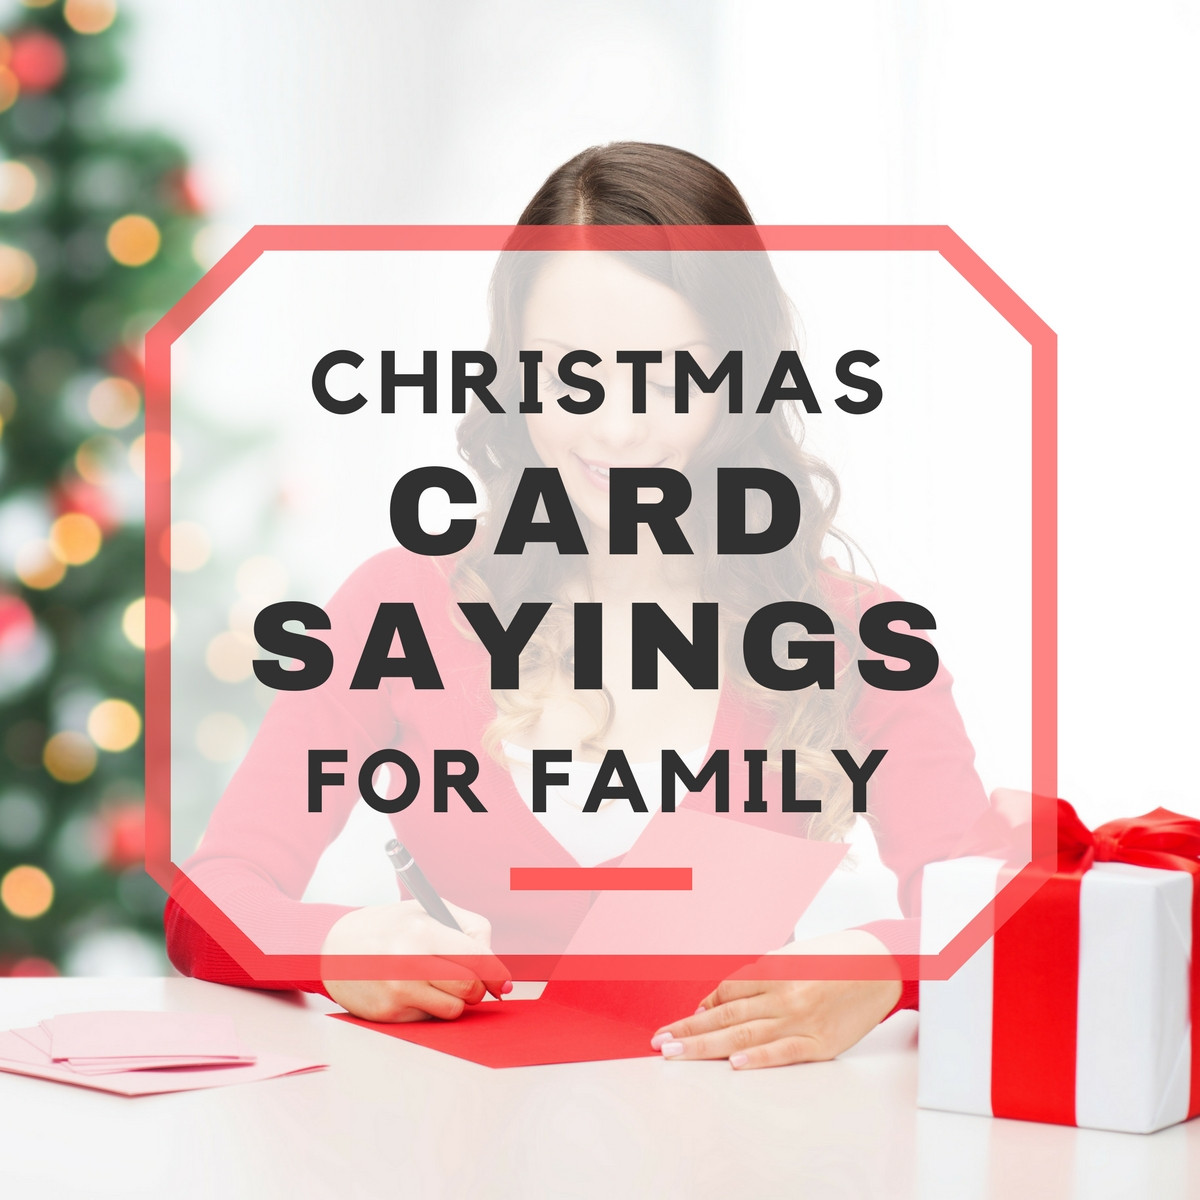 Quotes For Christmas Card  25 Christmas Card Sayings for Family